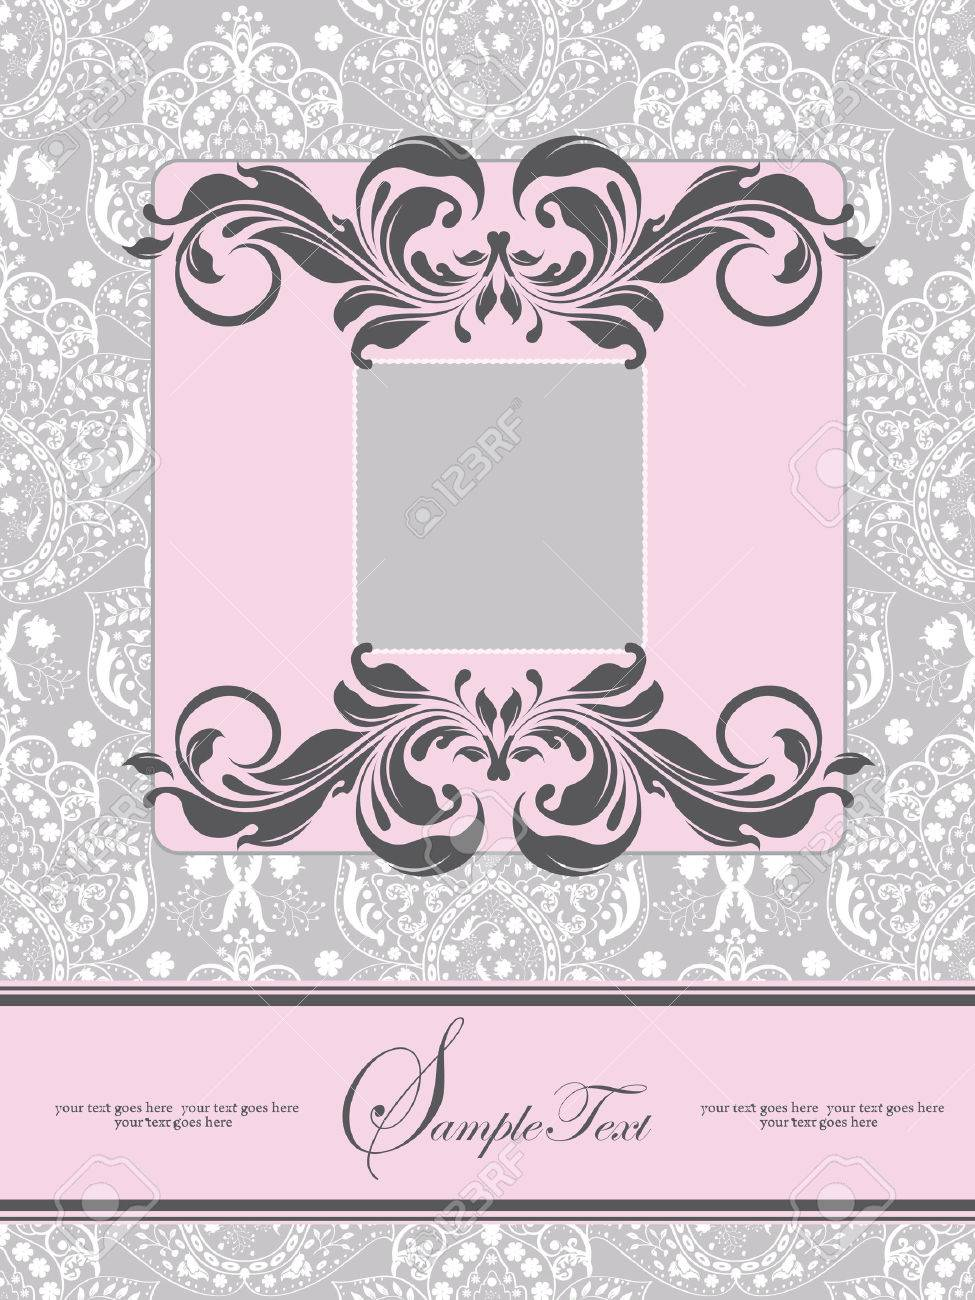 Vintage wedding invitation card with ornate elegant abstract vector vintage wedding invitation card with ornate elegant abstract floral design pink and gray with ribbon vector illustration stopboris Gallery